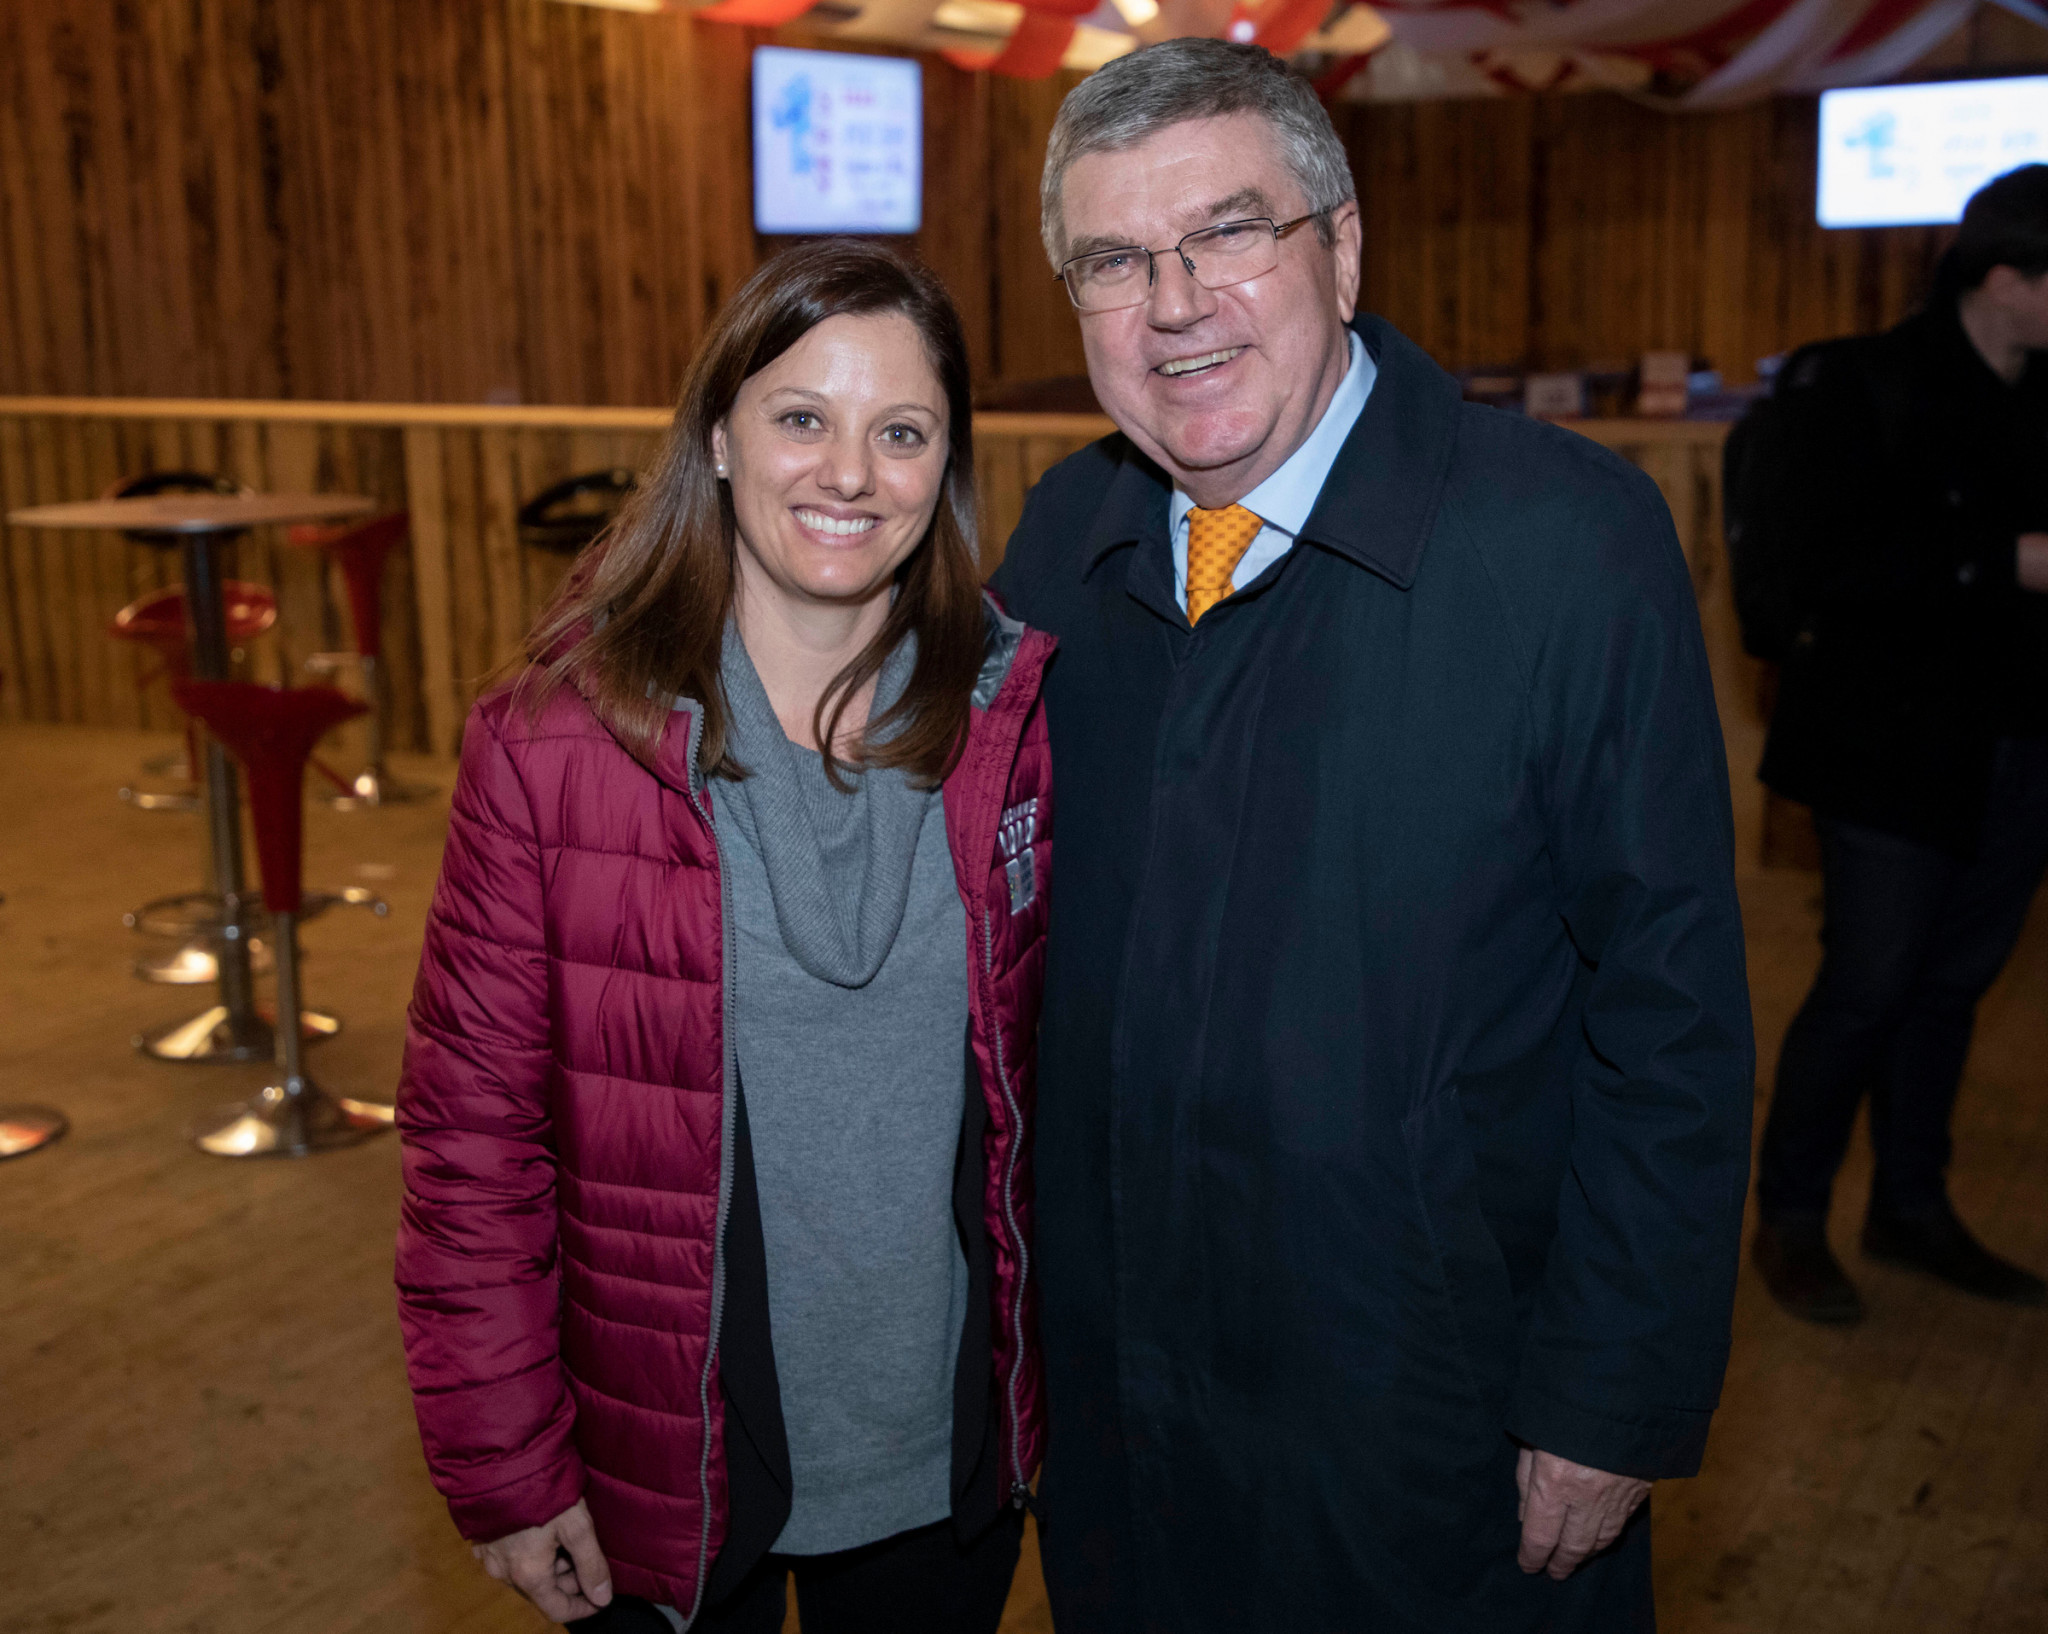 Lausanne 2020 President Virginie Faivre met IOC counterpart Thomas Bach during the one year to go celebrations ©IOC